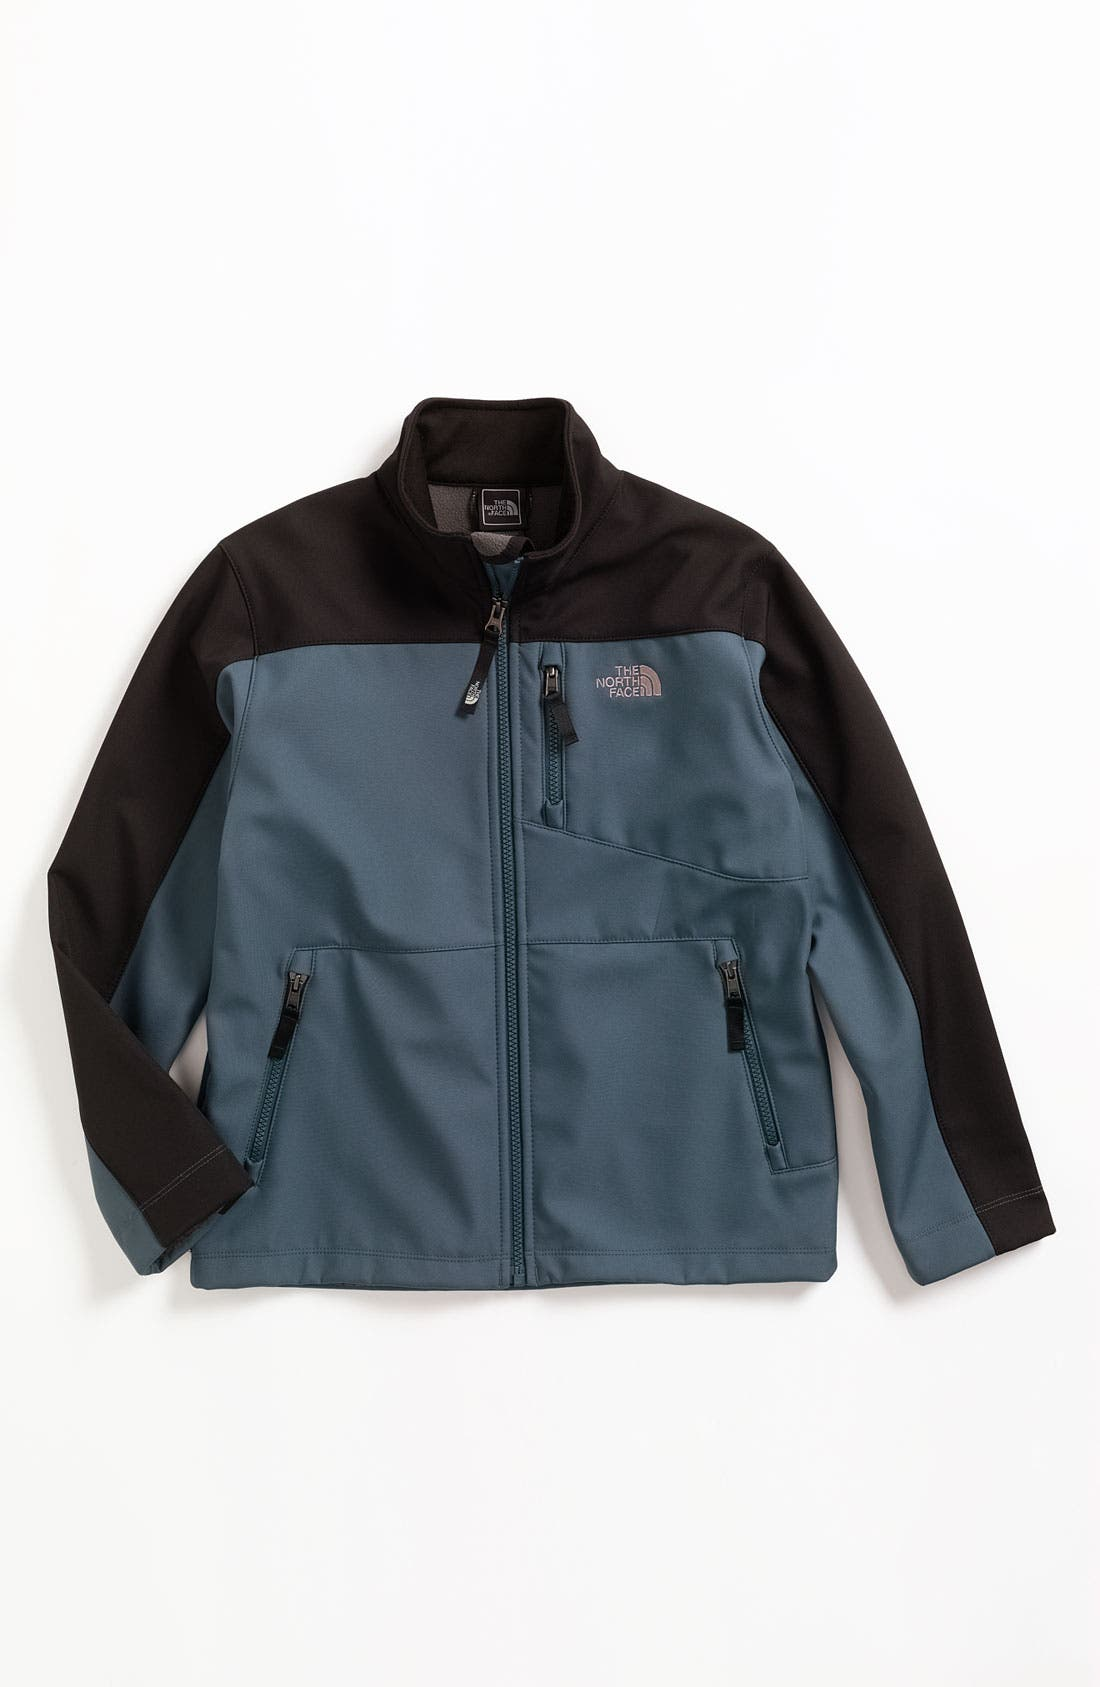 Main Image - The North Face 'Apex Bionic' Jacket (Big Boys)